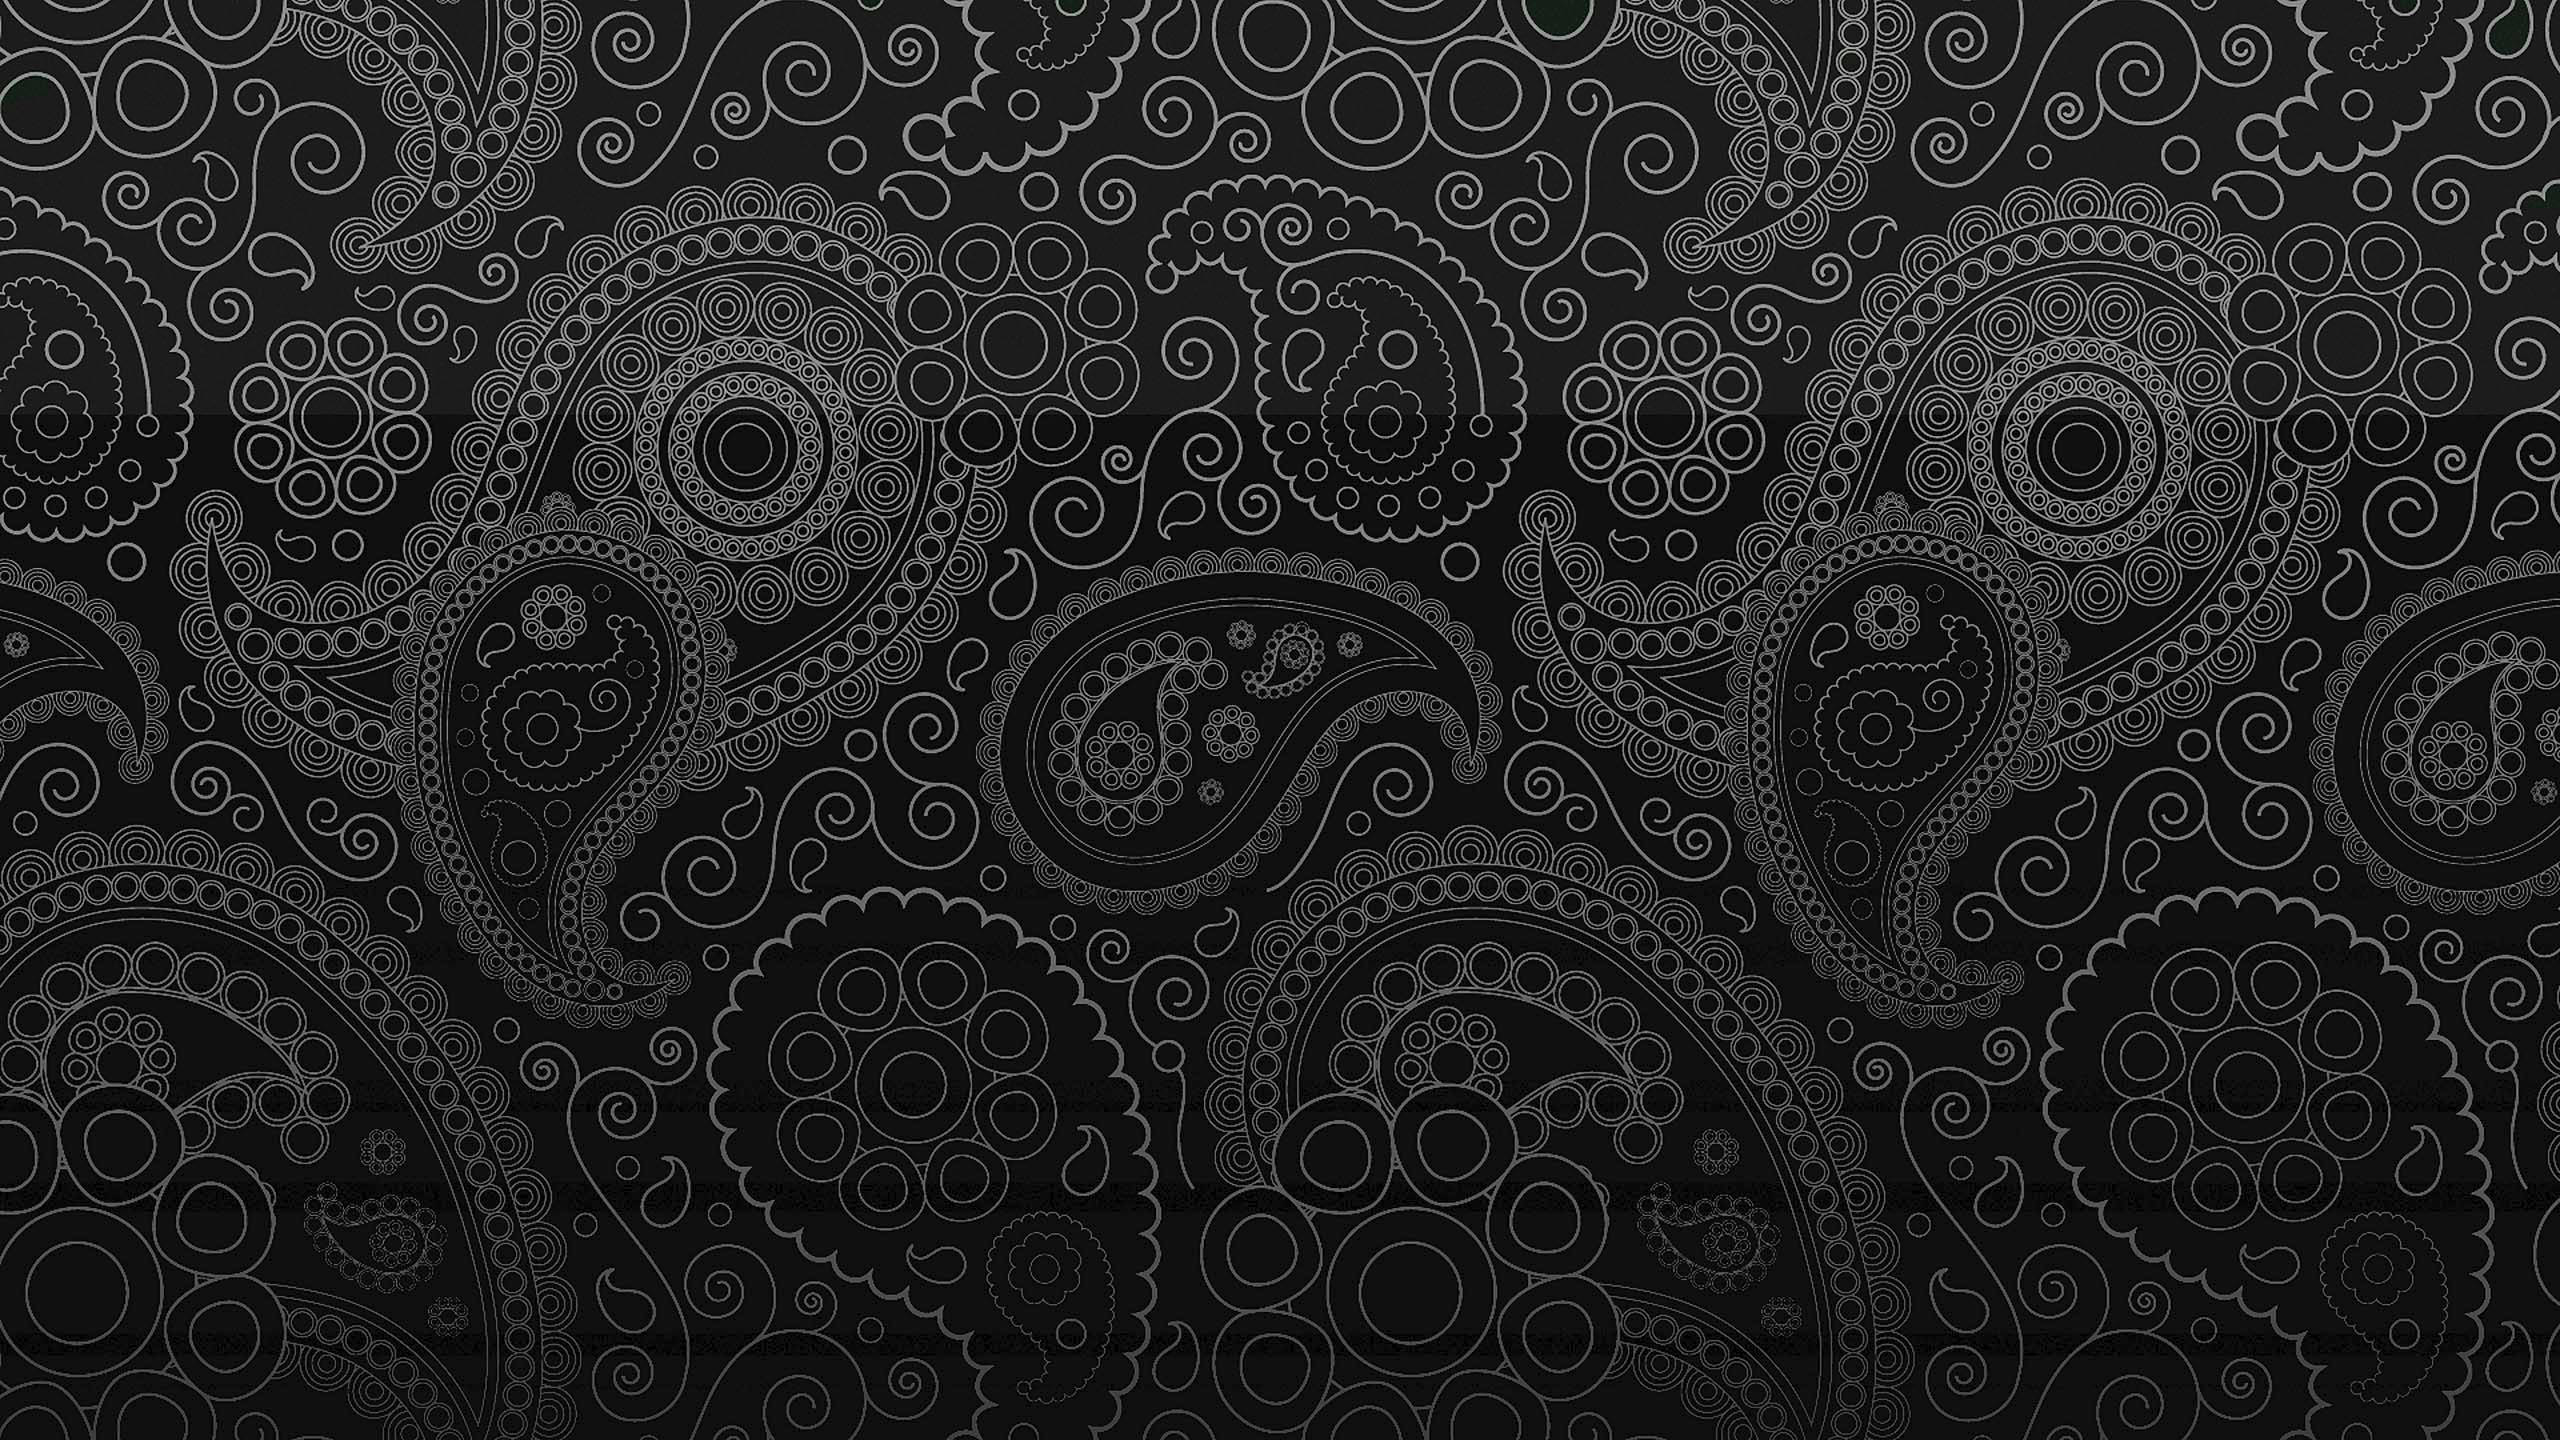 15+ Black Patterns | Textures | Photoshop Patterns ...